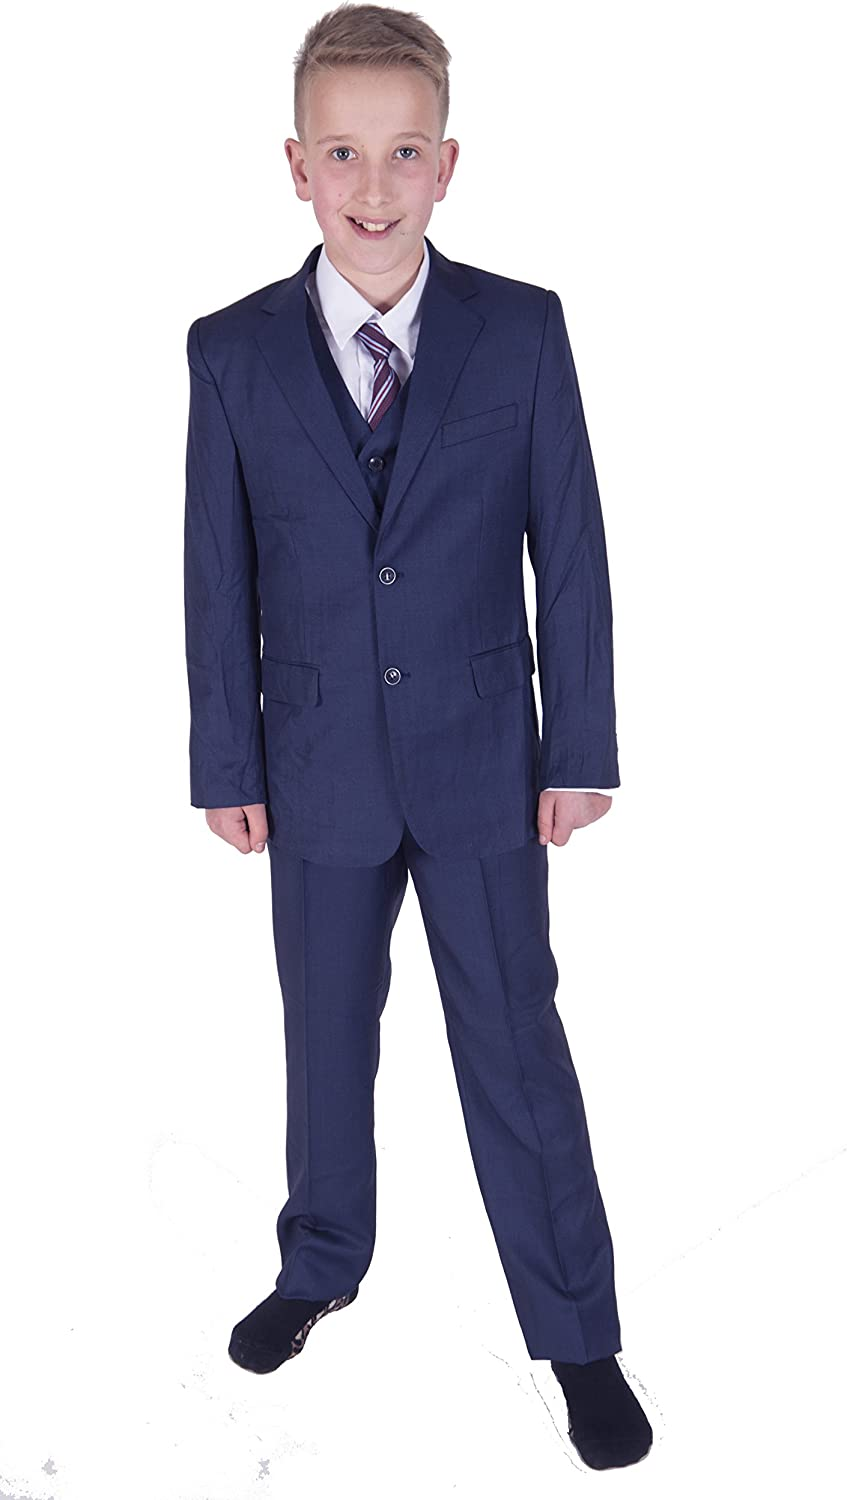 Cinda Boys Formal Blue Suits Wedding Pageboy Party Prom 5 Piece Suit